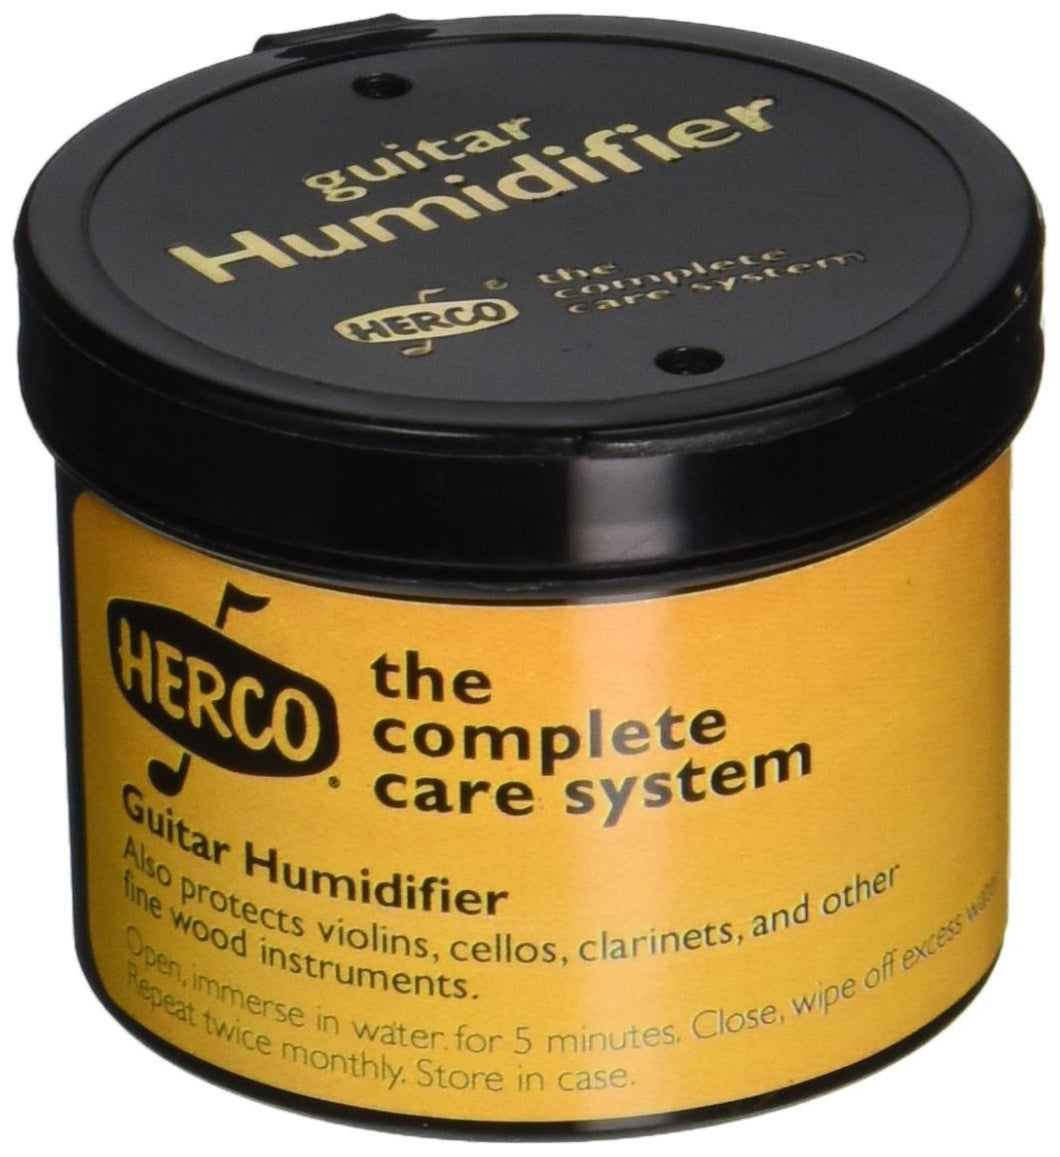 Herco Guitar Humidifier